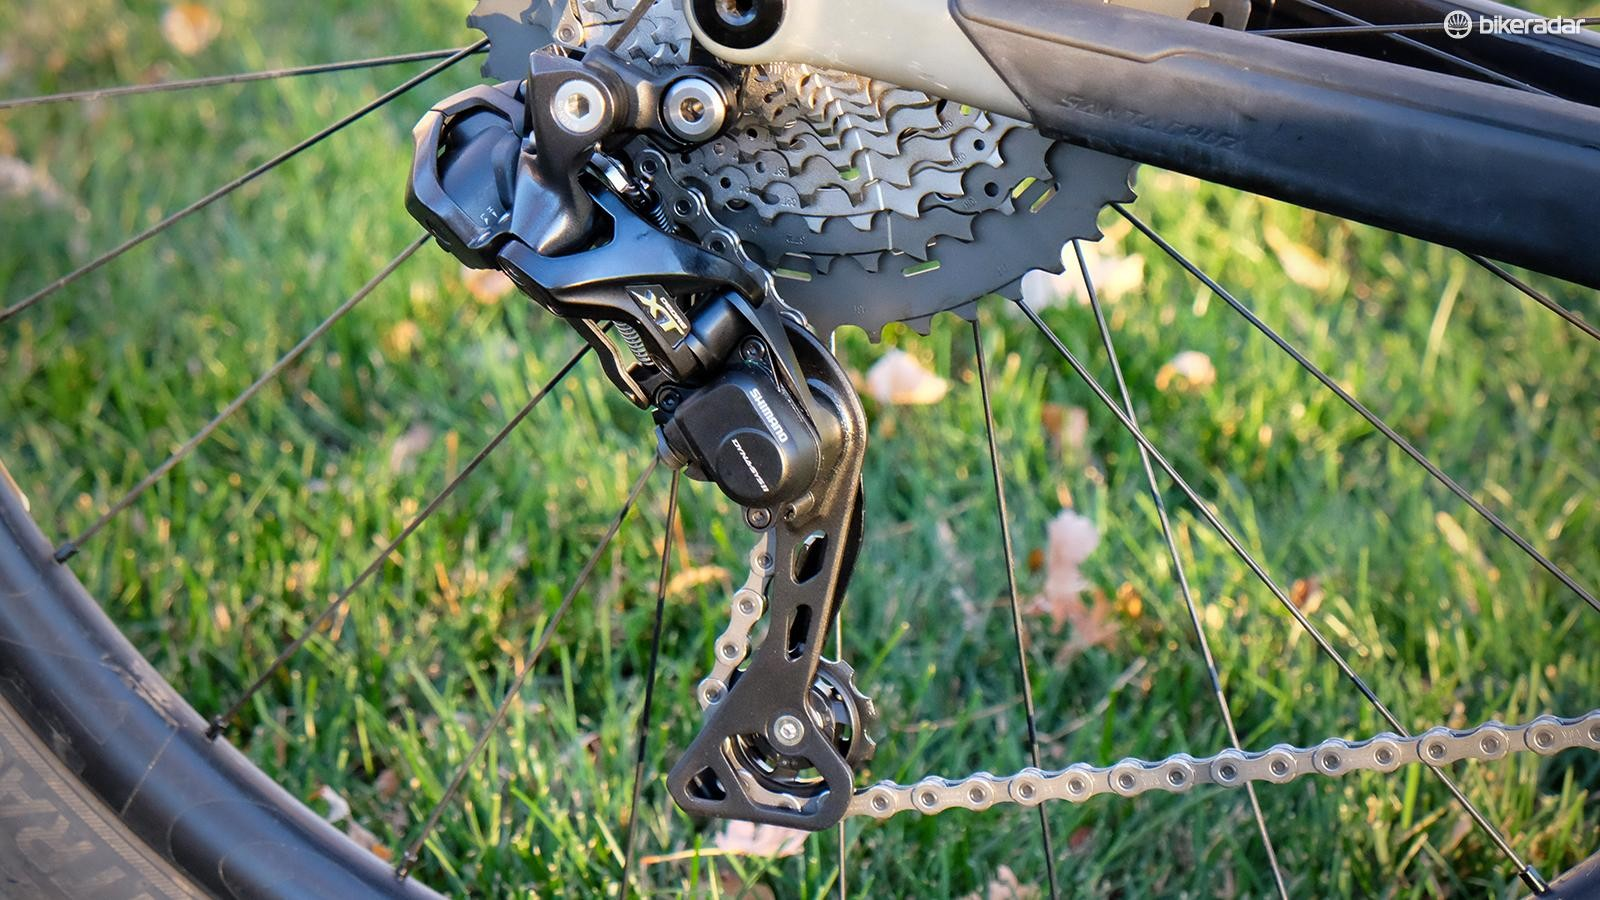 The XT Di2 derailleur comes in a single cage length and works with 1x and 2x drivetrains